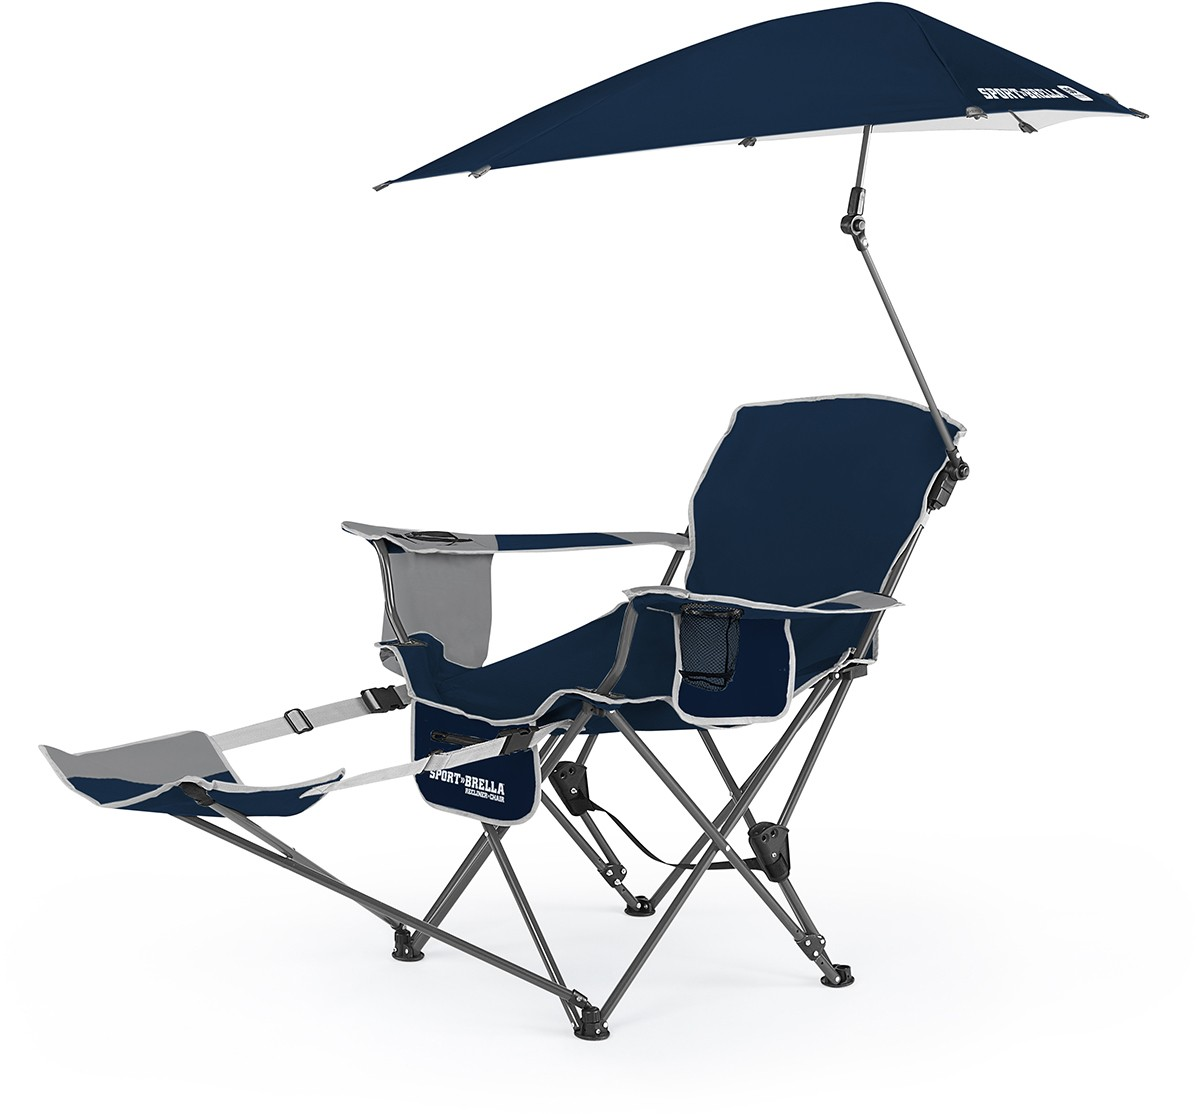 Phenomenal Sklz Sport Brella Recliner Folding Chair W Umbrella Footrest Gmtry Best Dining Table And Chair Ideas Images Gmtryco